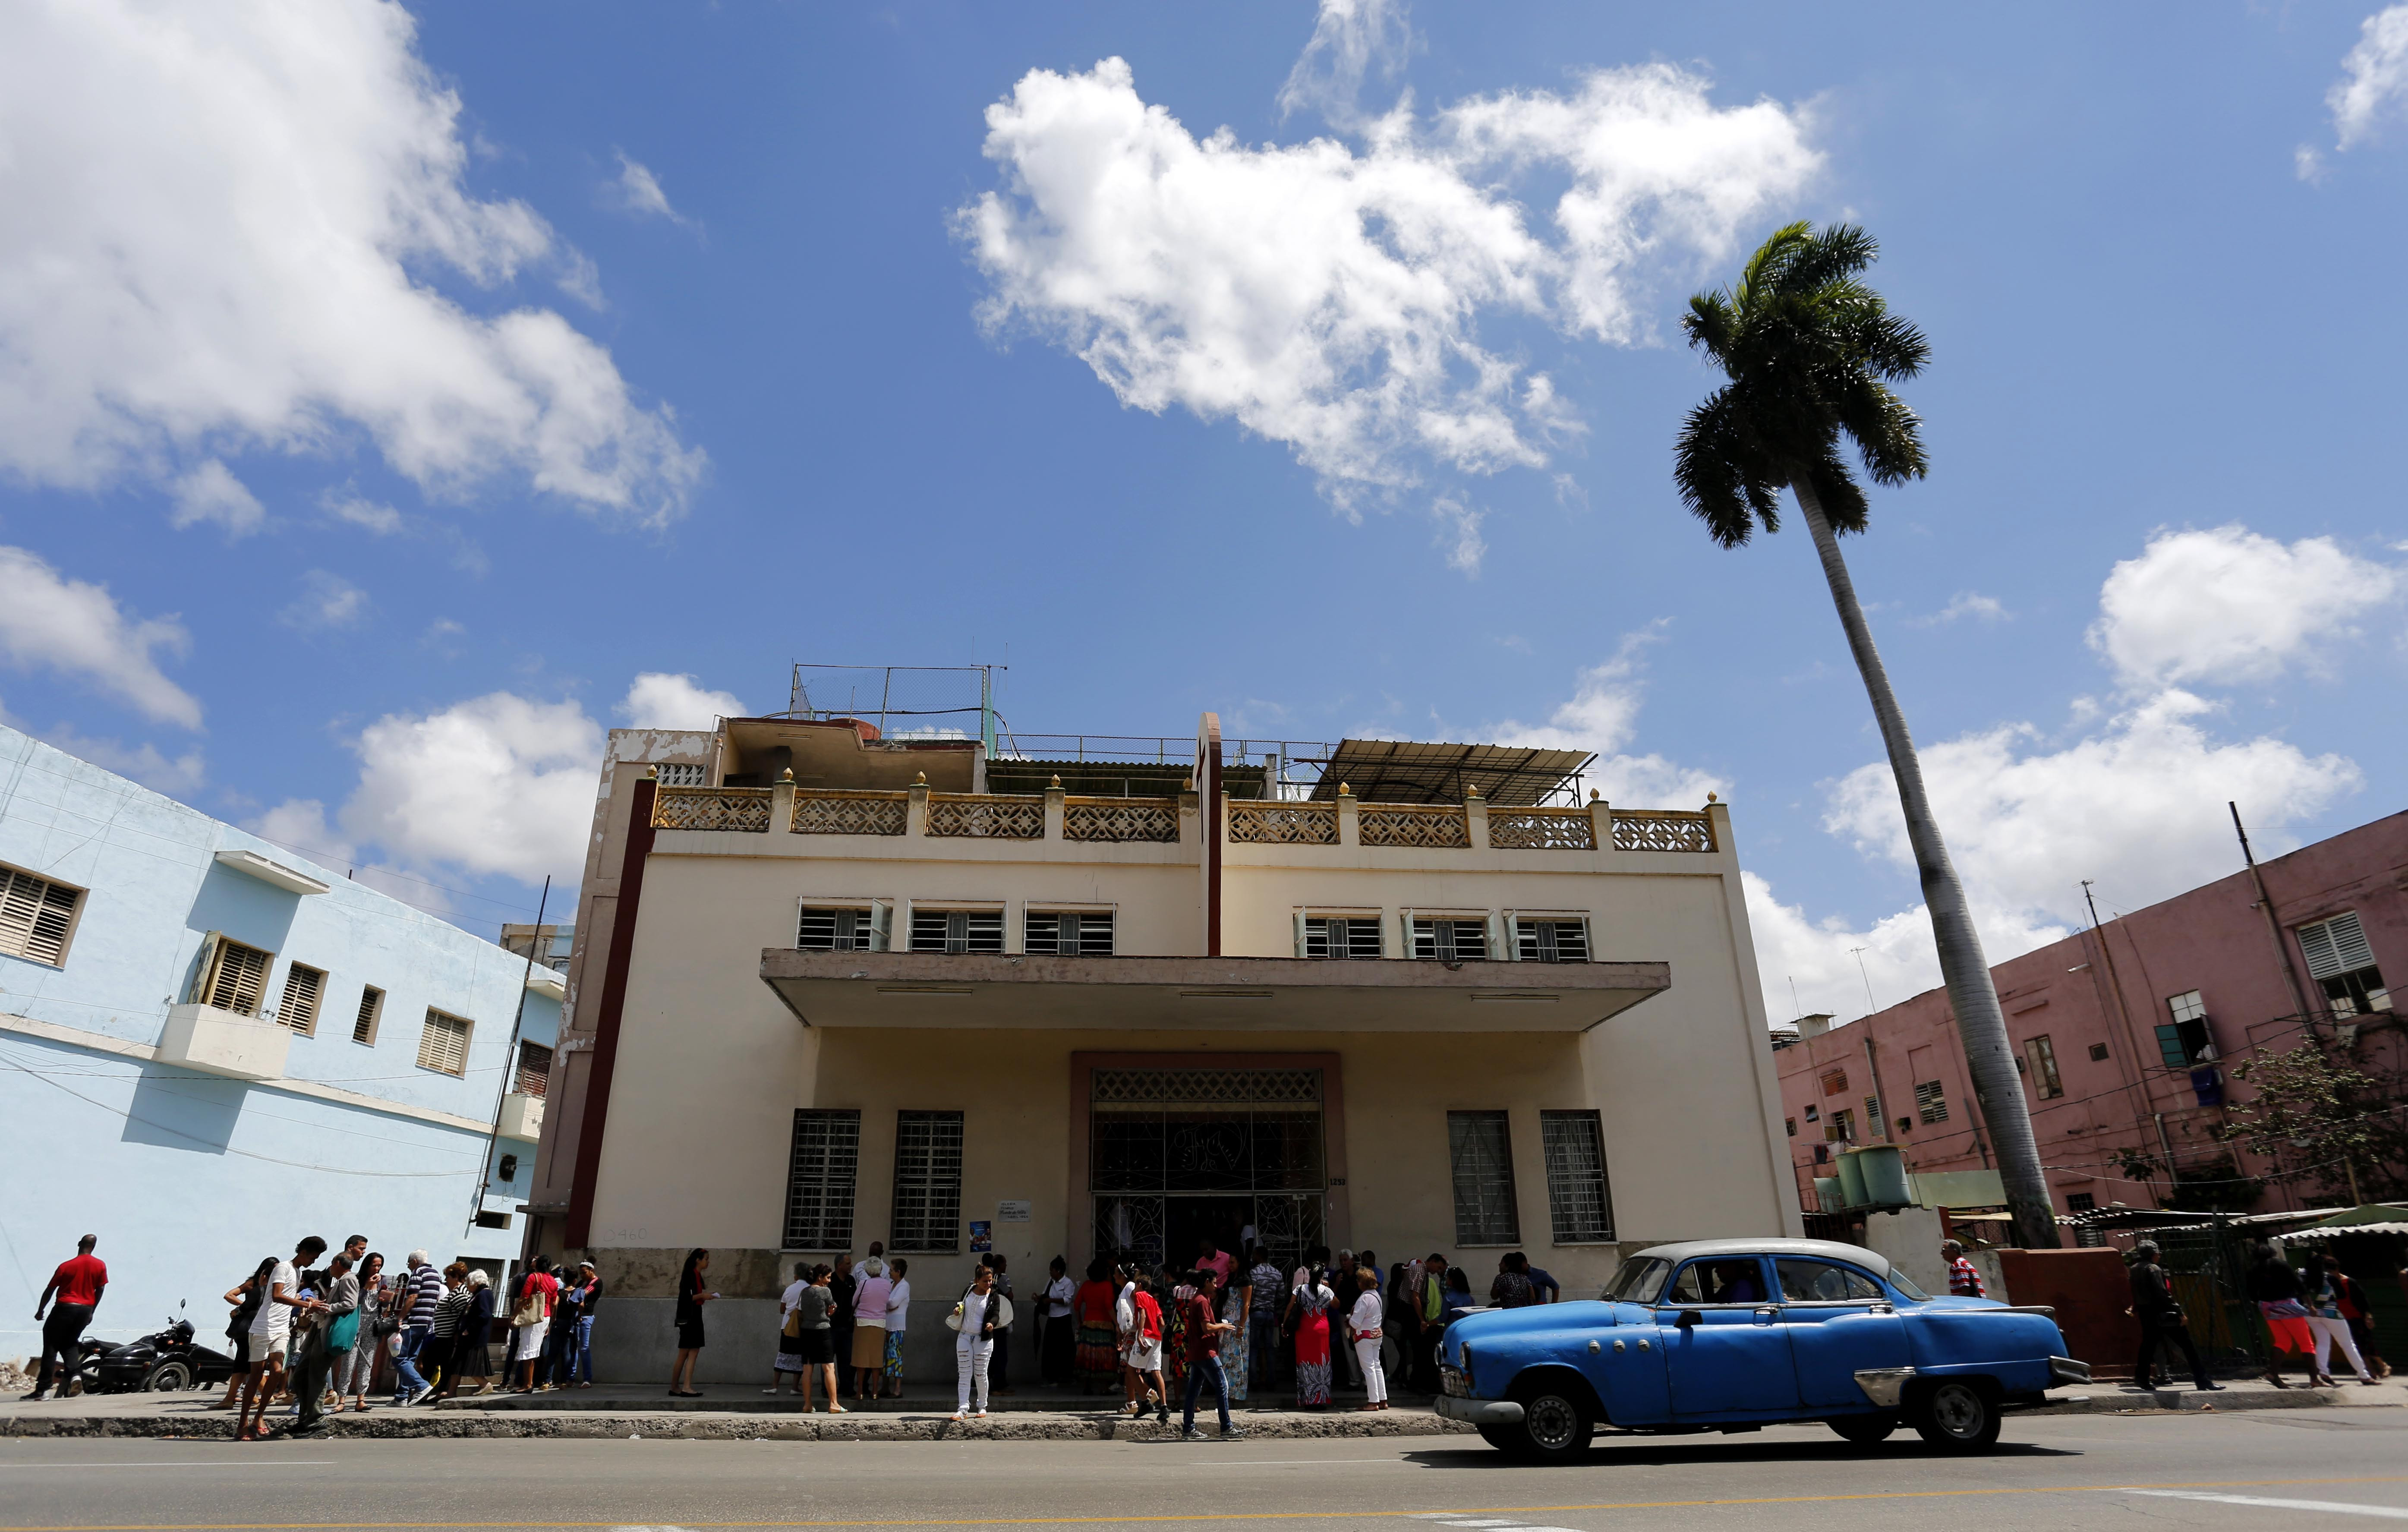 Covering Cuba's Continued Suppression of Human Rights, Private Enterprise and Religious Freedom